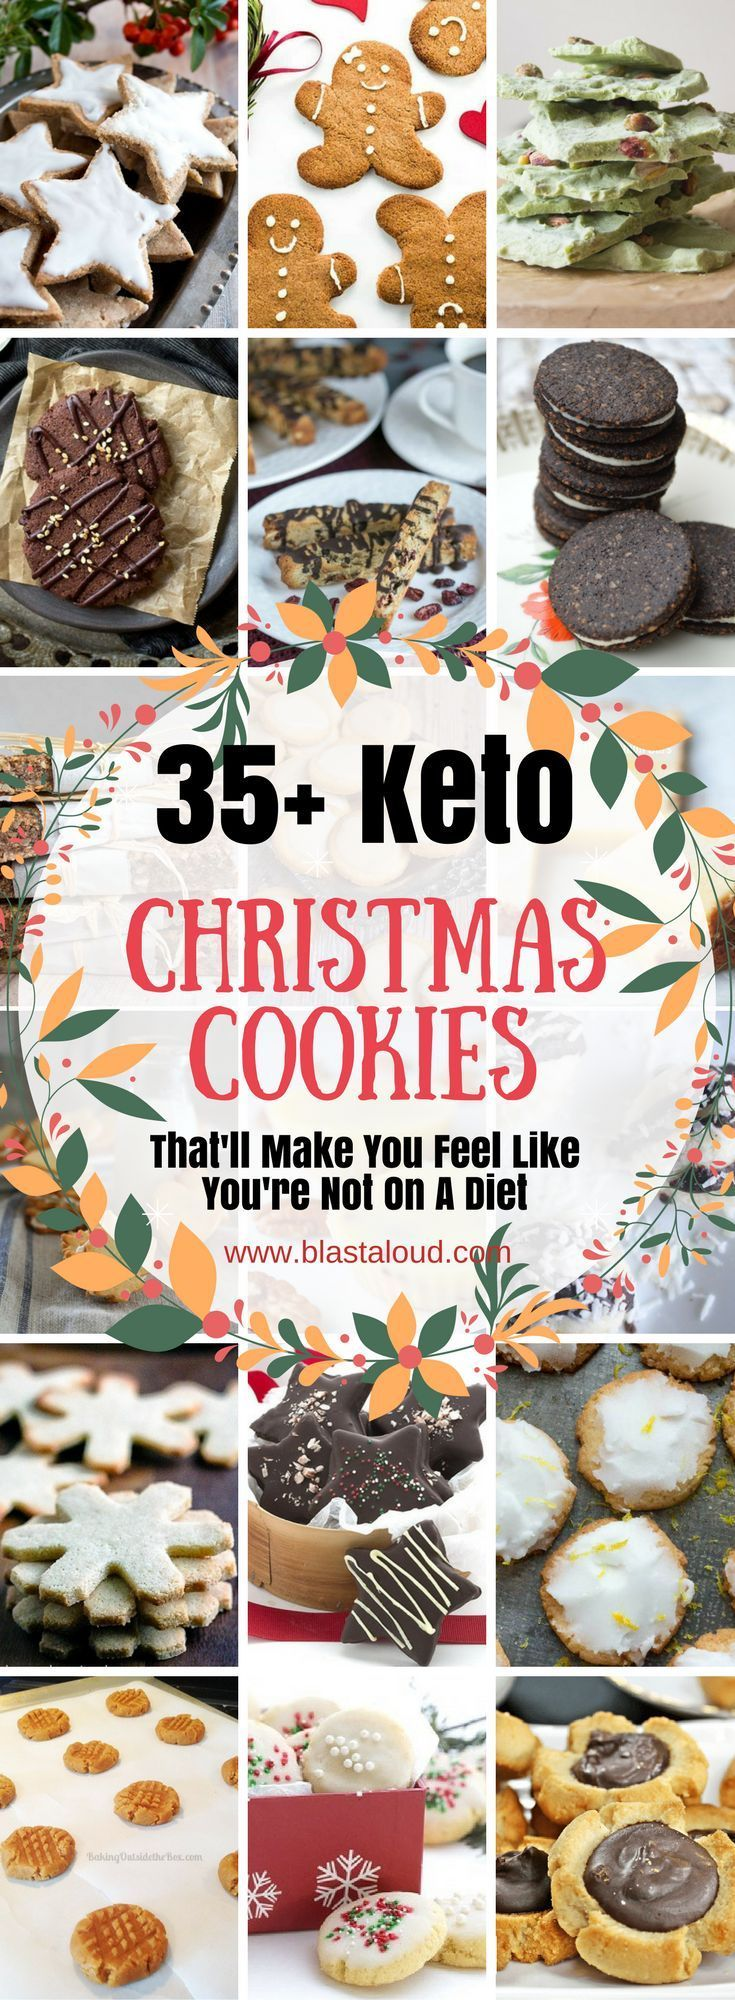 36 Keto Christmas Cookies That'll Make You Feel Like You're Not on a Diet #ketocookierecipes